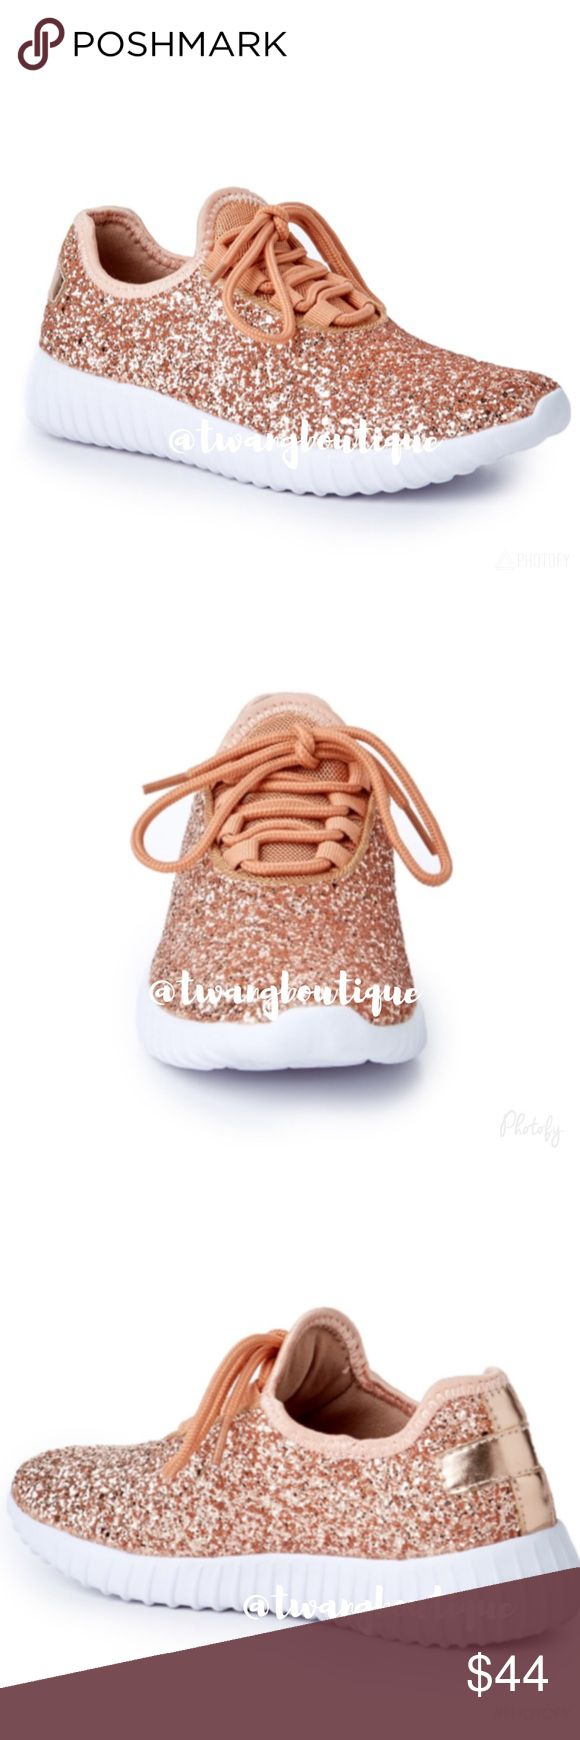 Sale! << Rose Gold Glitter Sparkle Shine Shoes Sparkle, shine and stand out in these shoes! These babies are comfy and will make any outfit look so glam! Fit true to size. Available in whole sizes only, so if you are a half size go a size up. Use these tennis shoes for athletic functions and look fly up in that gym! Or wear them on a casual day around town and sparkle! Also available in silver and black. Boutique Shoes